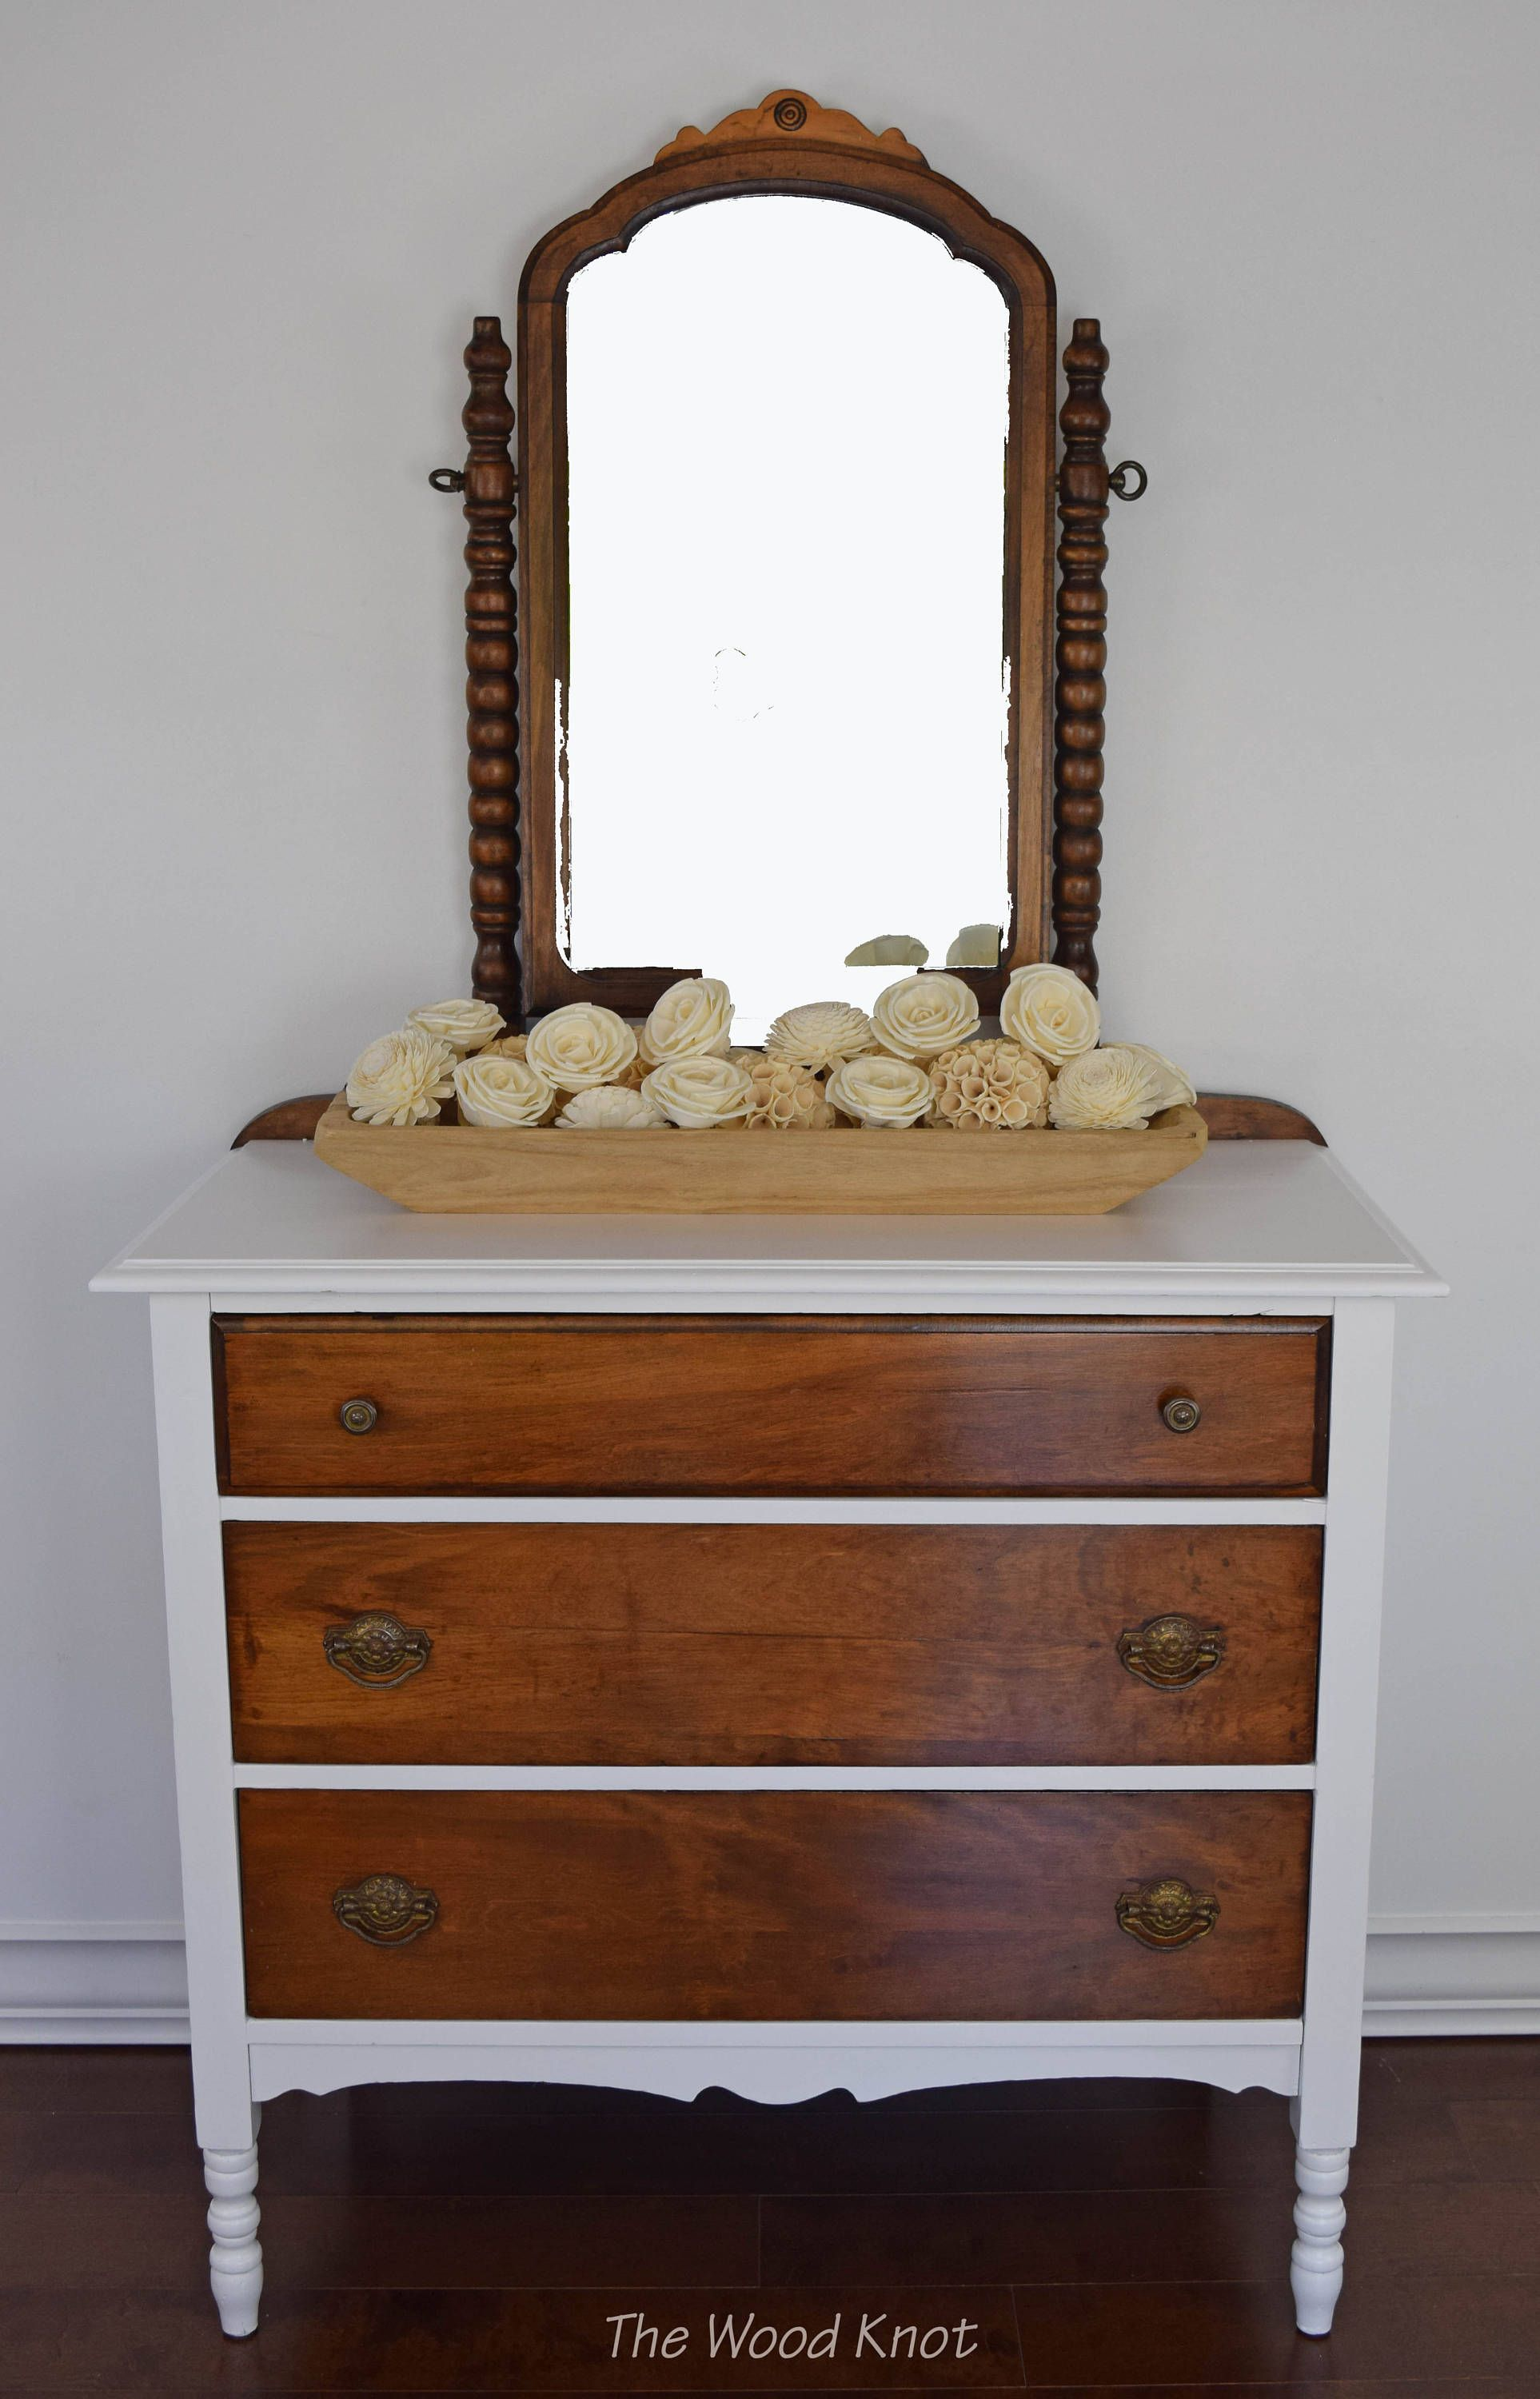 Vintage white dresser with mirror Dark wooden stained for contrast